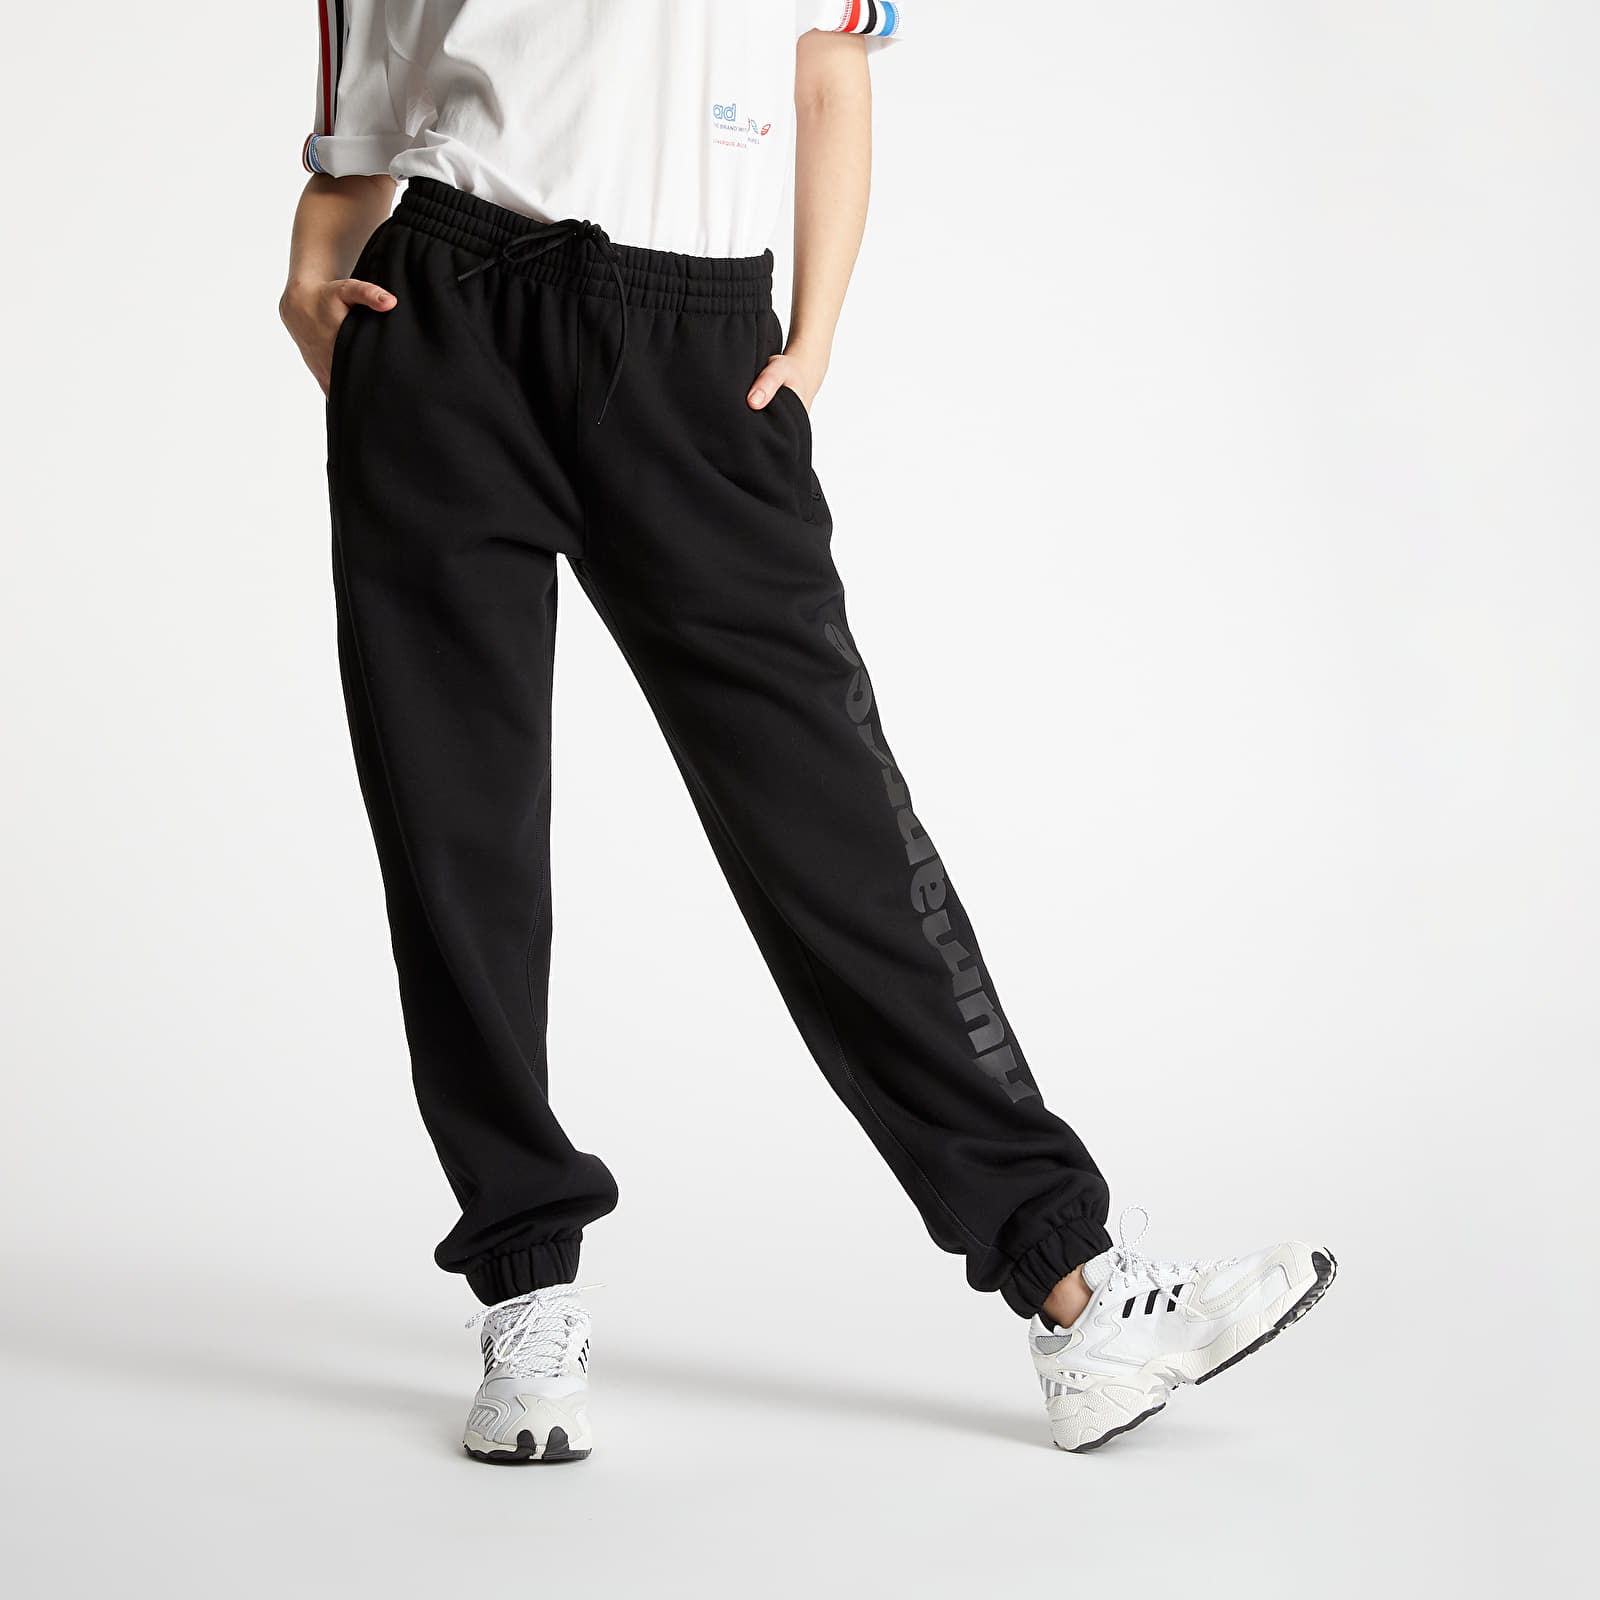 Pants and jeans adidas x Pharrel Williams Premium Basics Pant Black